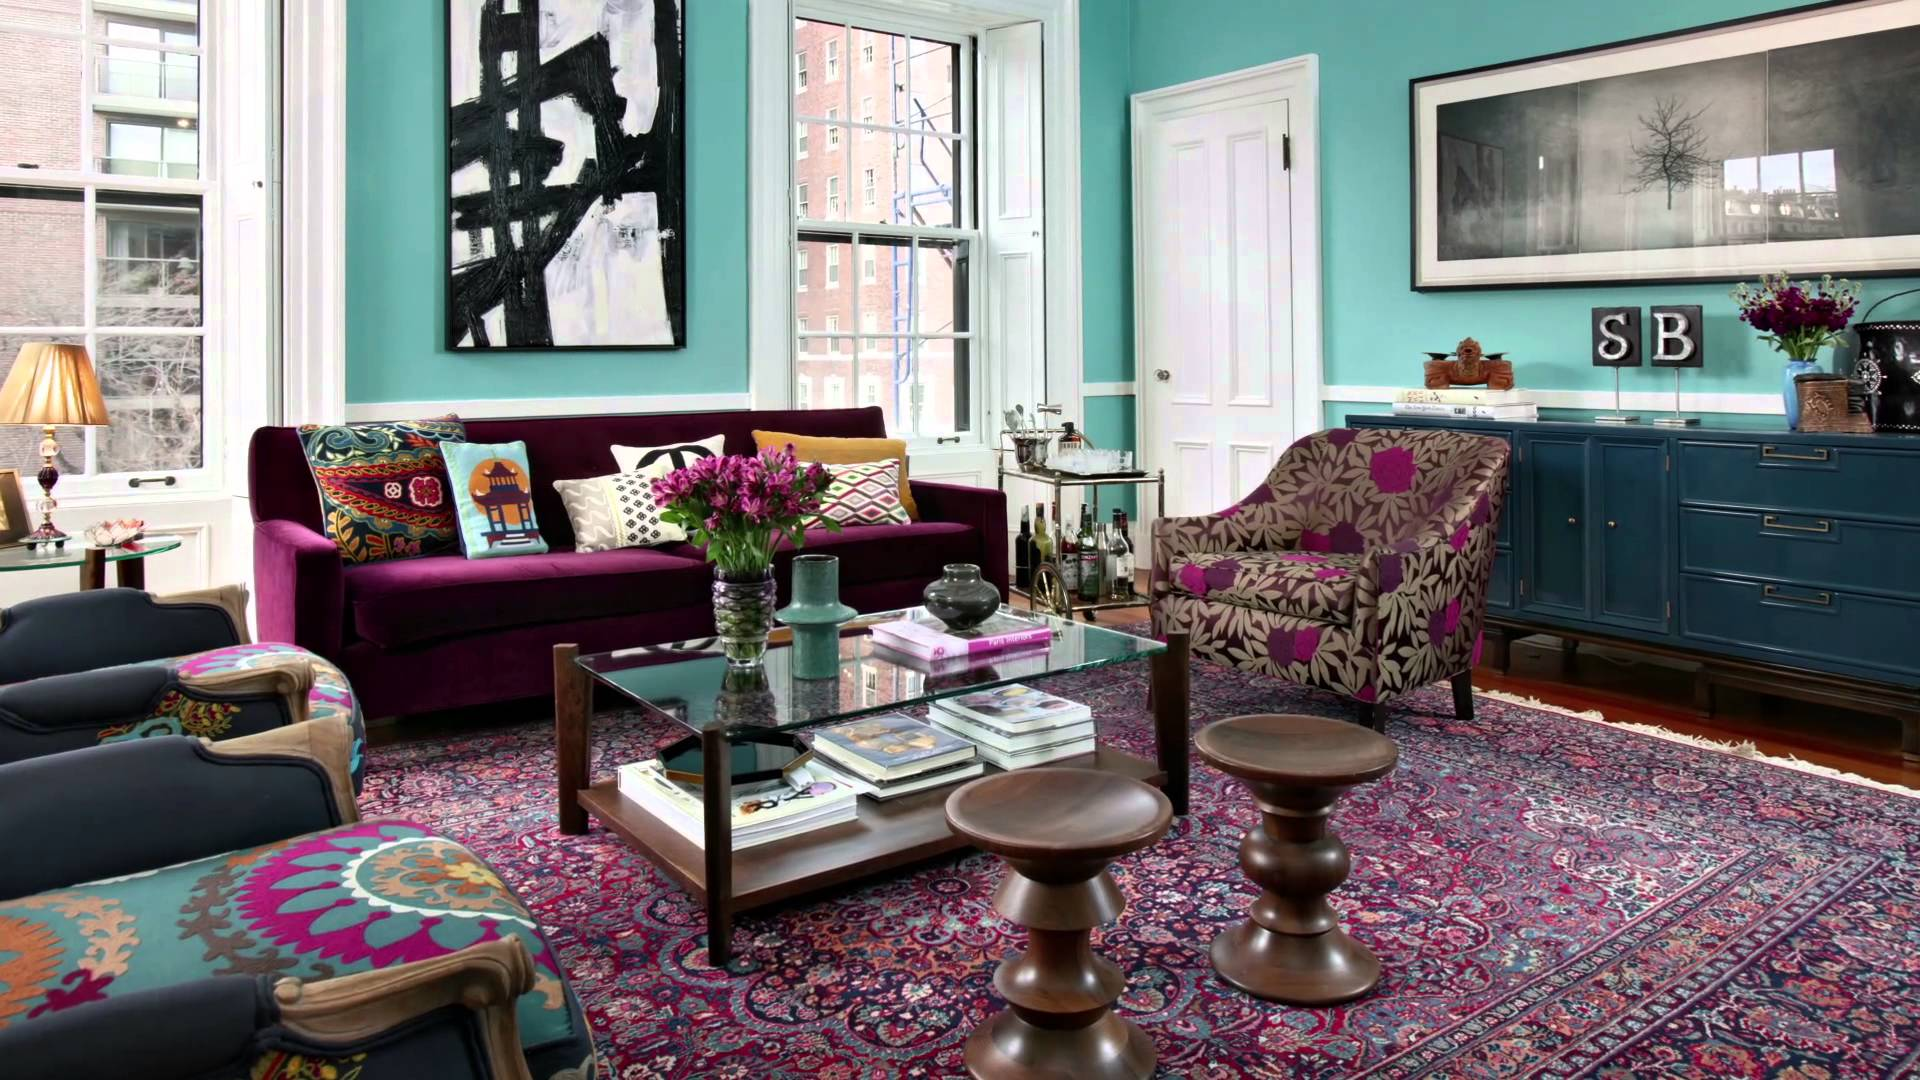 fabric interiors top ny interior designers katie curtis top NYC interior designer